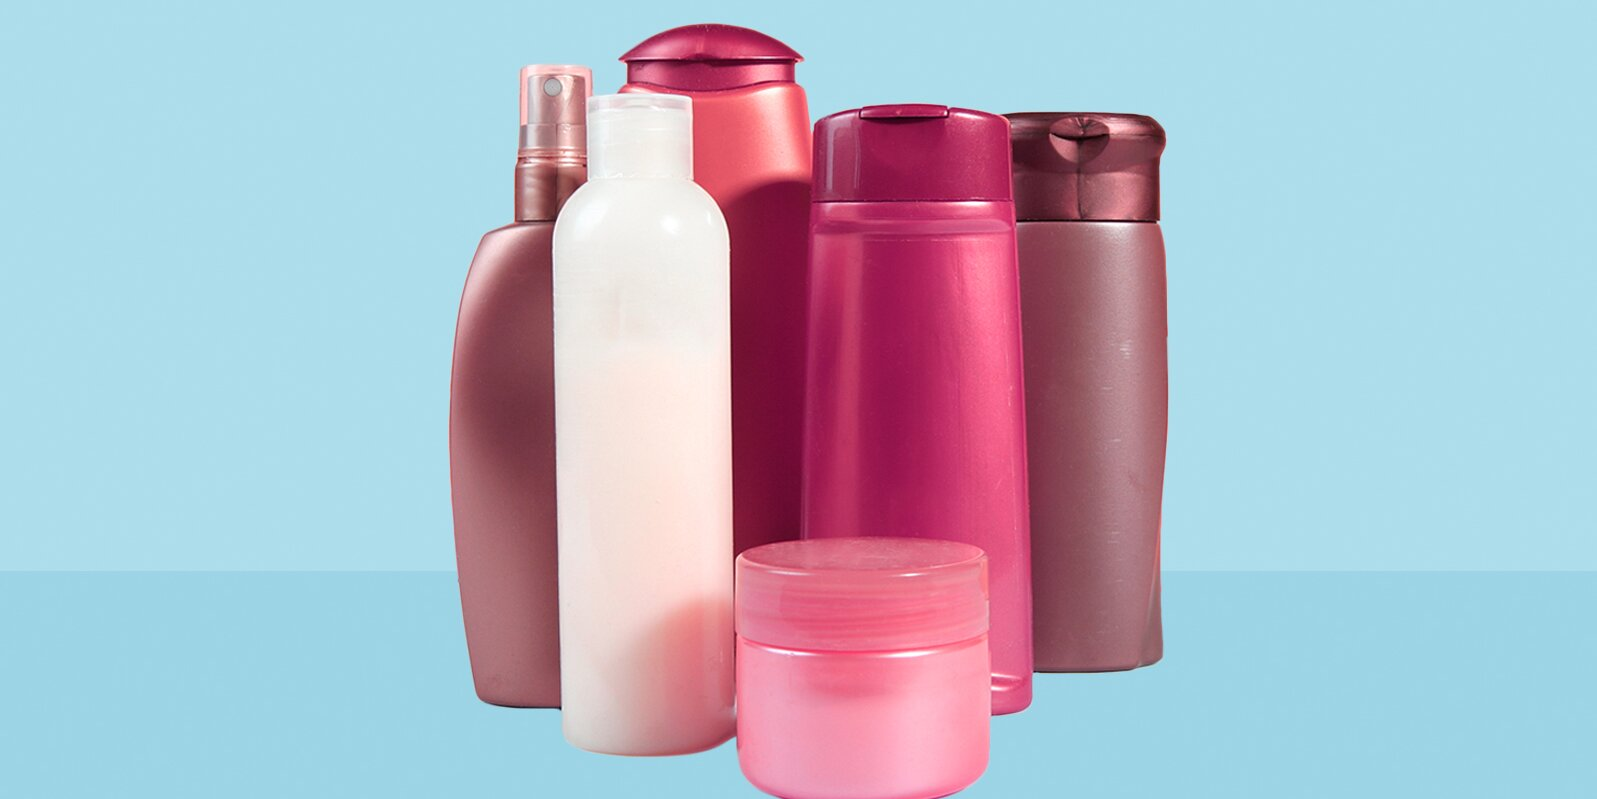 Curly Girl Method Products: Shampoos, Conditioners, Tools | Real Simple